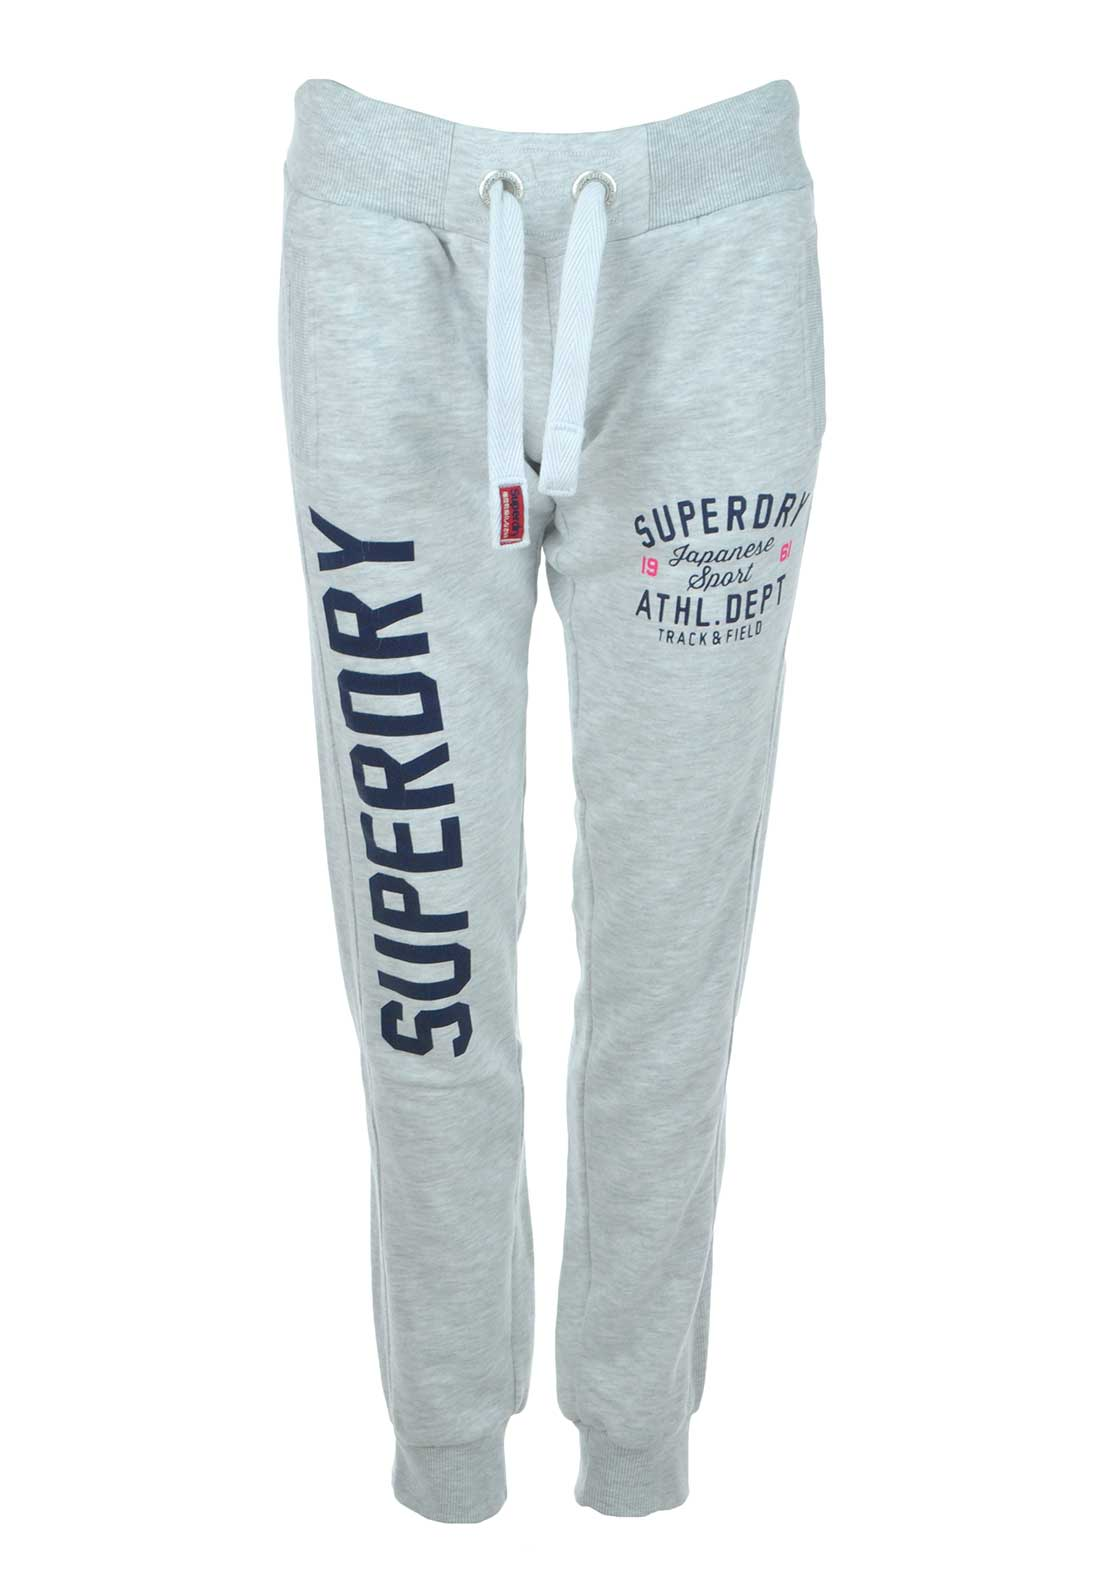 Superdry Womens Japanese Sport Trackster Jogger Tracksuit Bottoms, Ice Marl